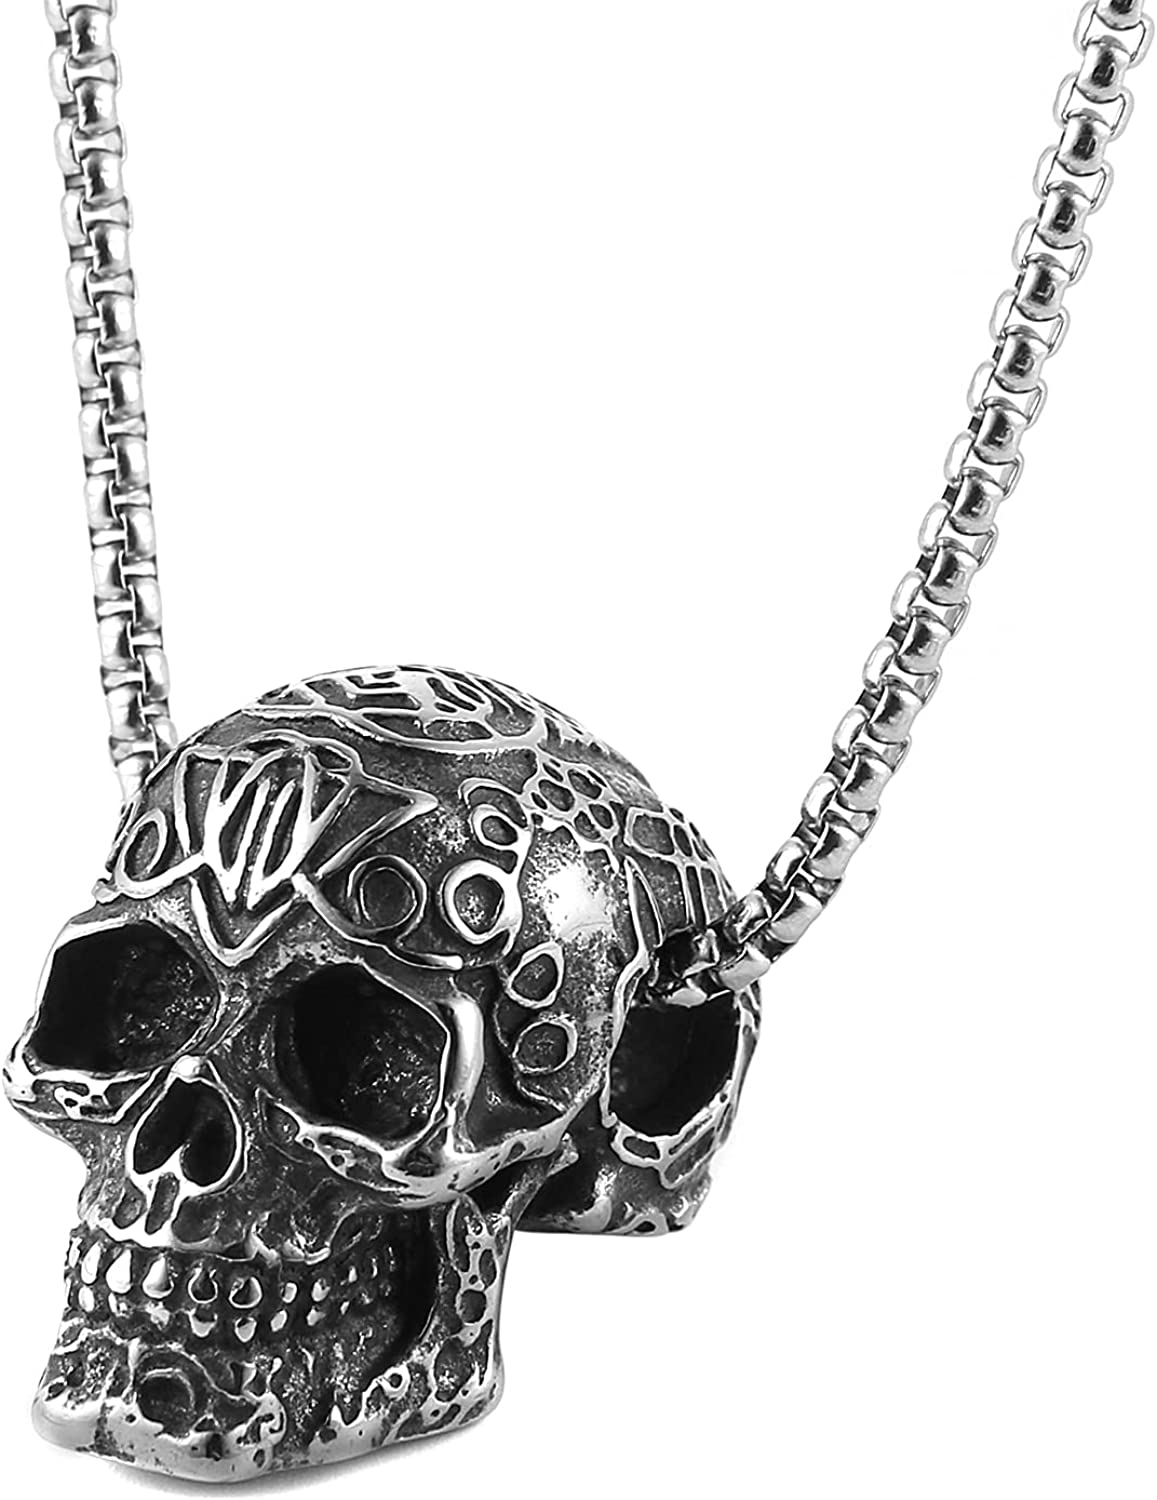 Scddboy Stainless Steel Retro Gothic Skull Style Cocktail Party Biker Pendant Necklace